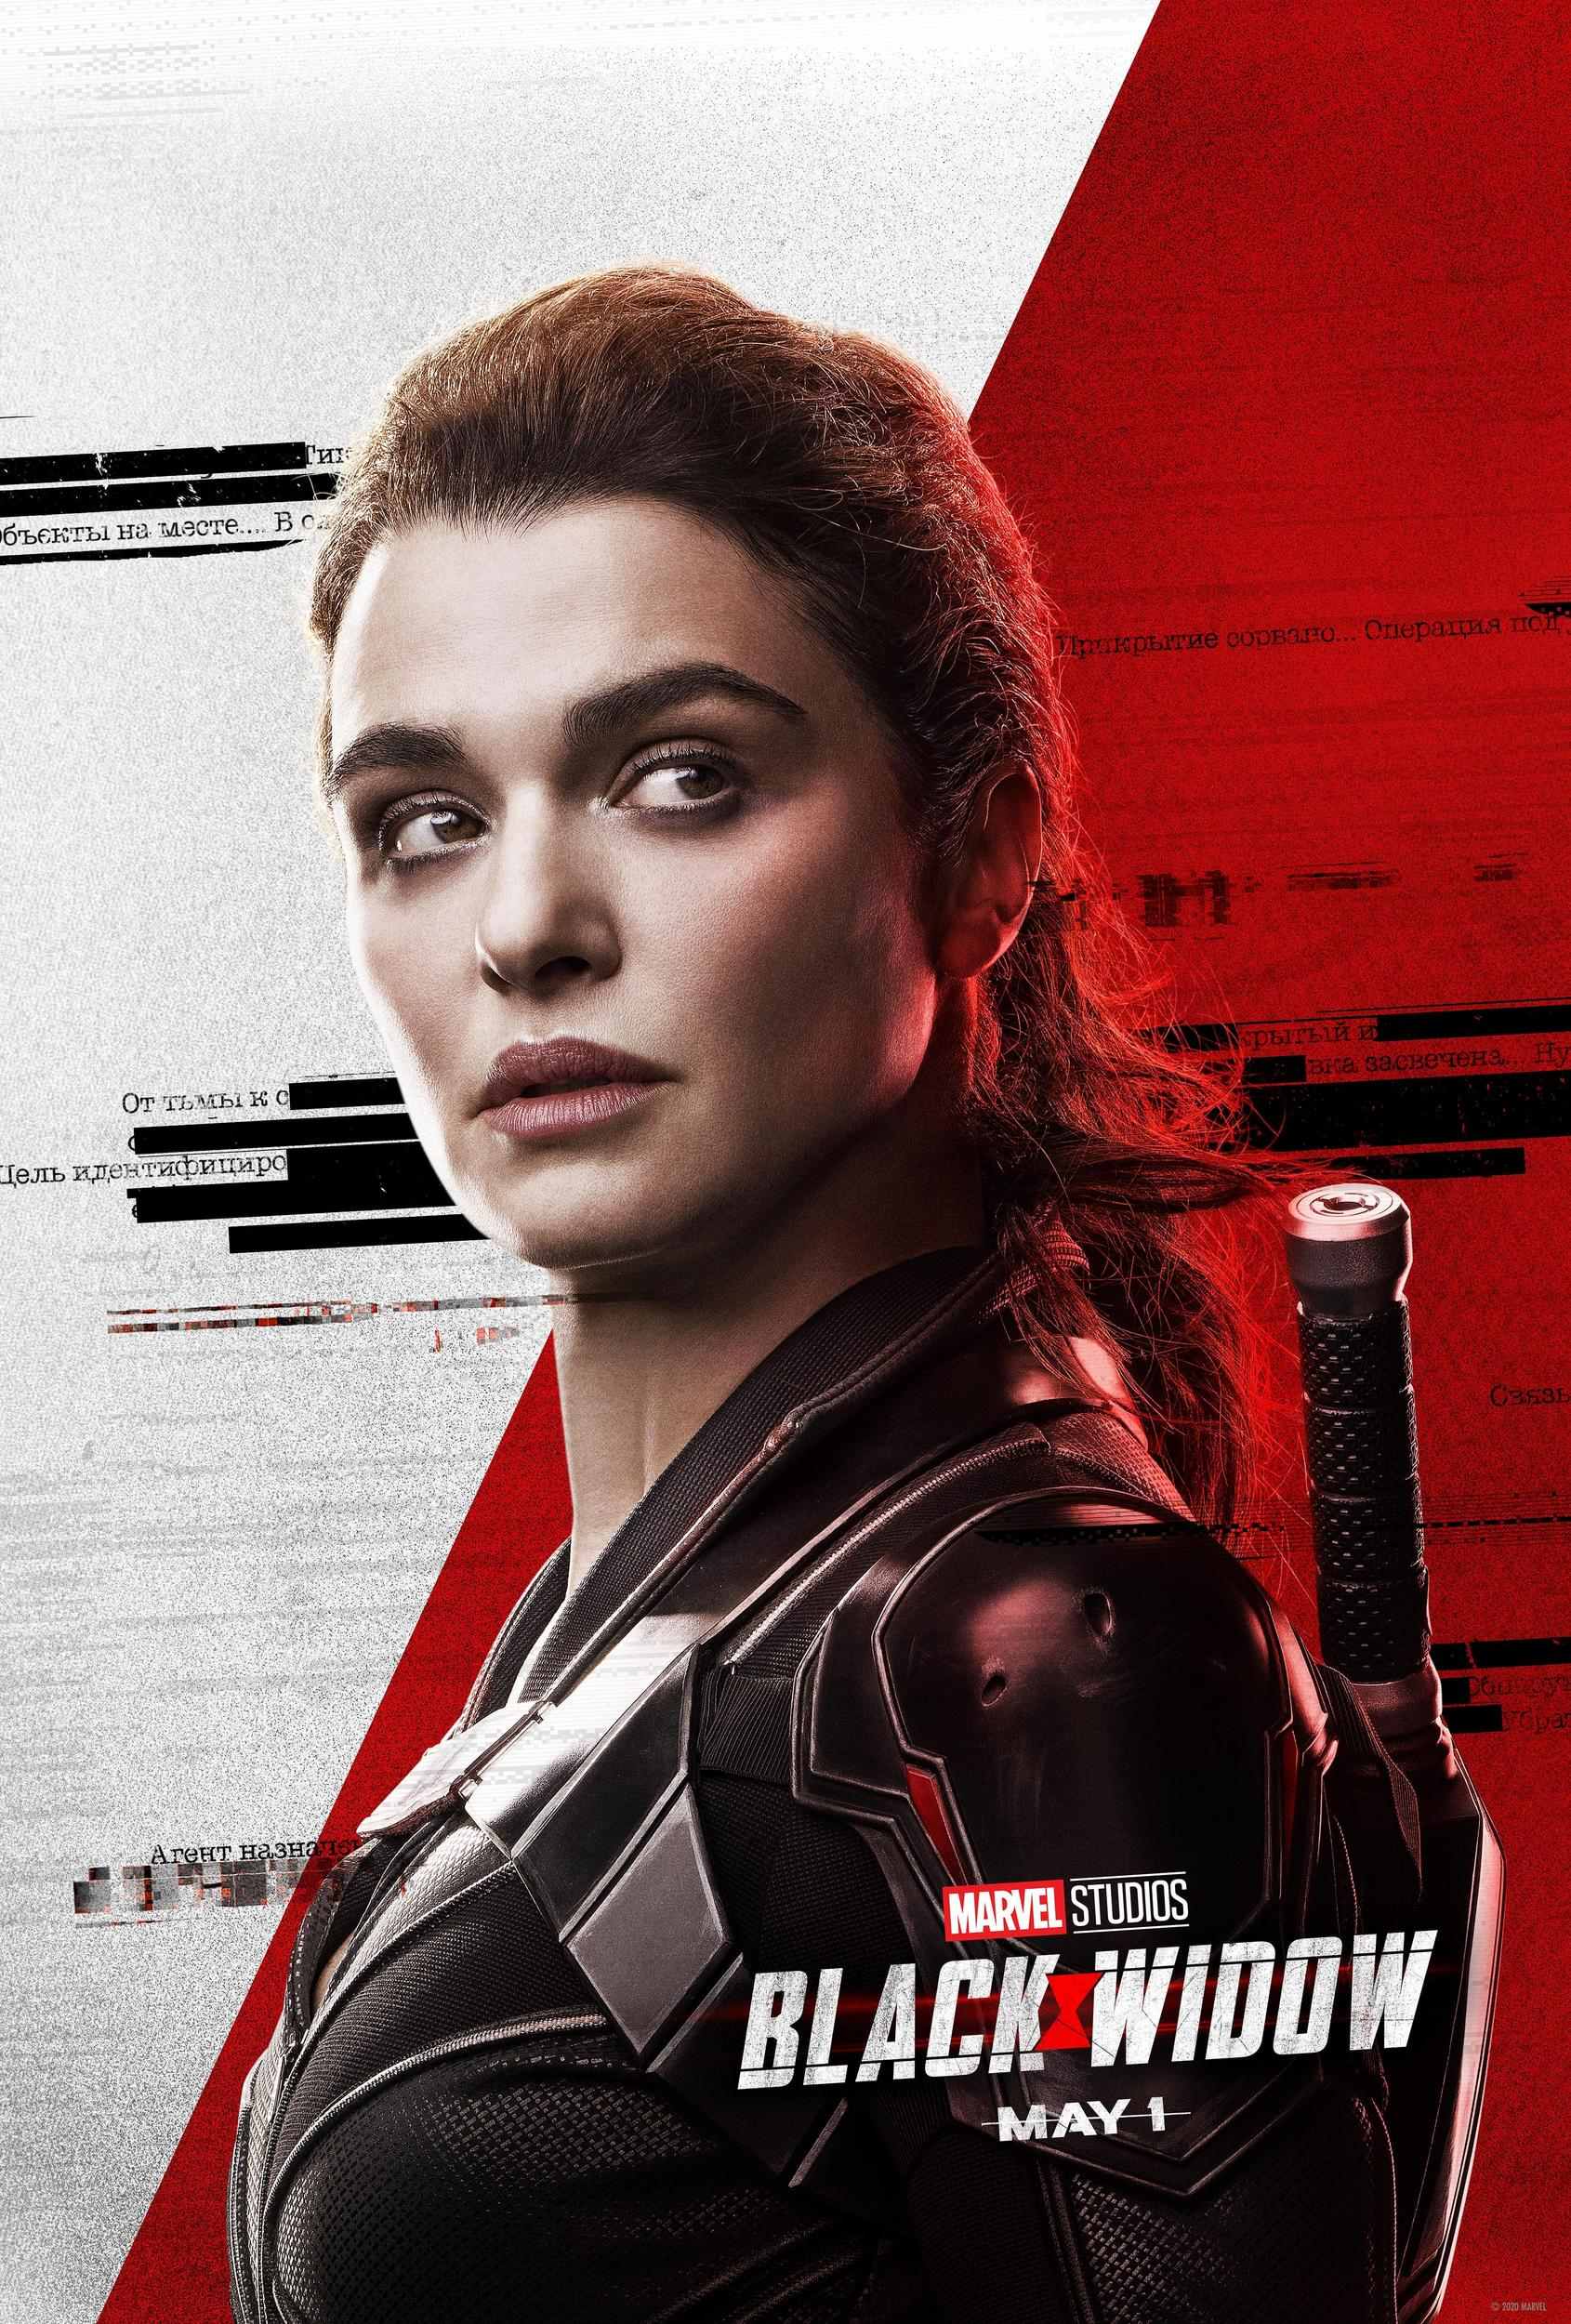 Black Widow character hi res posters Movie Wallpapers 1690x2500